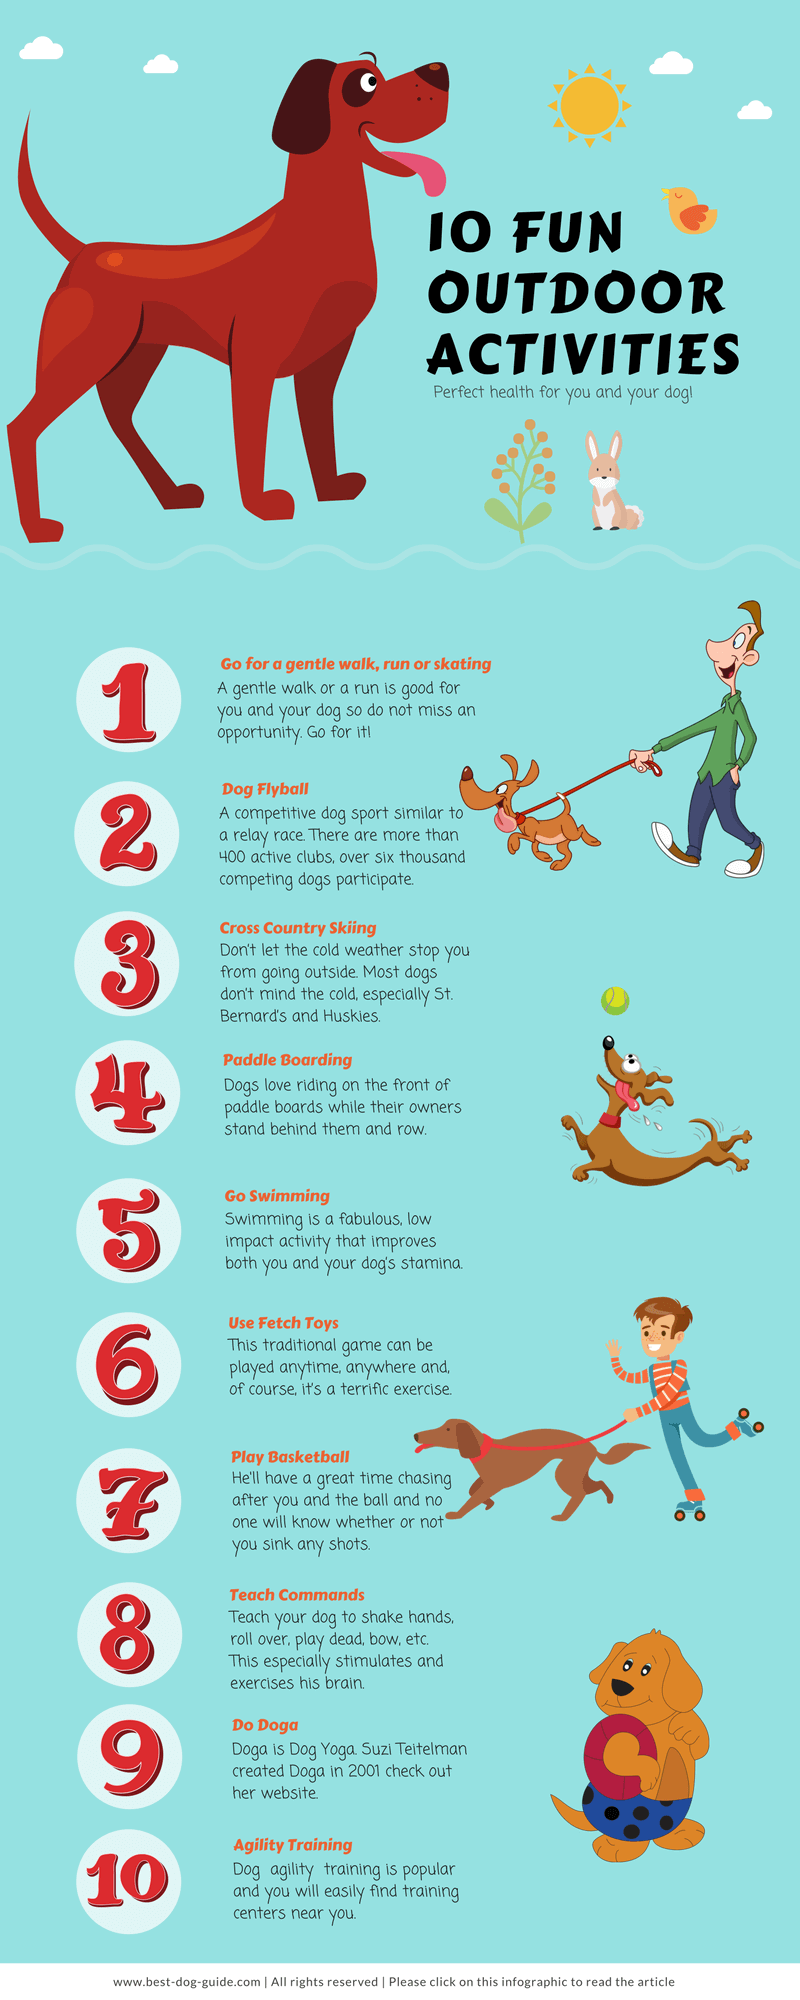 10 Fun Outdoor Activities For You & Your Dog